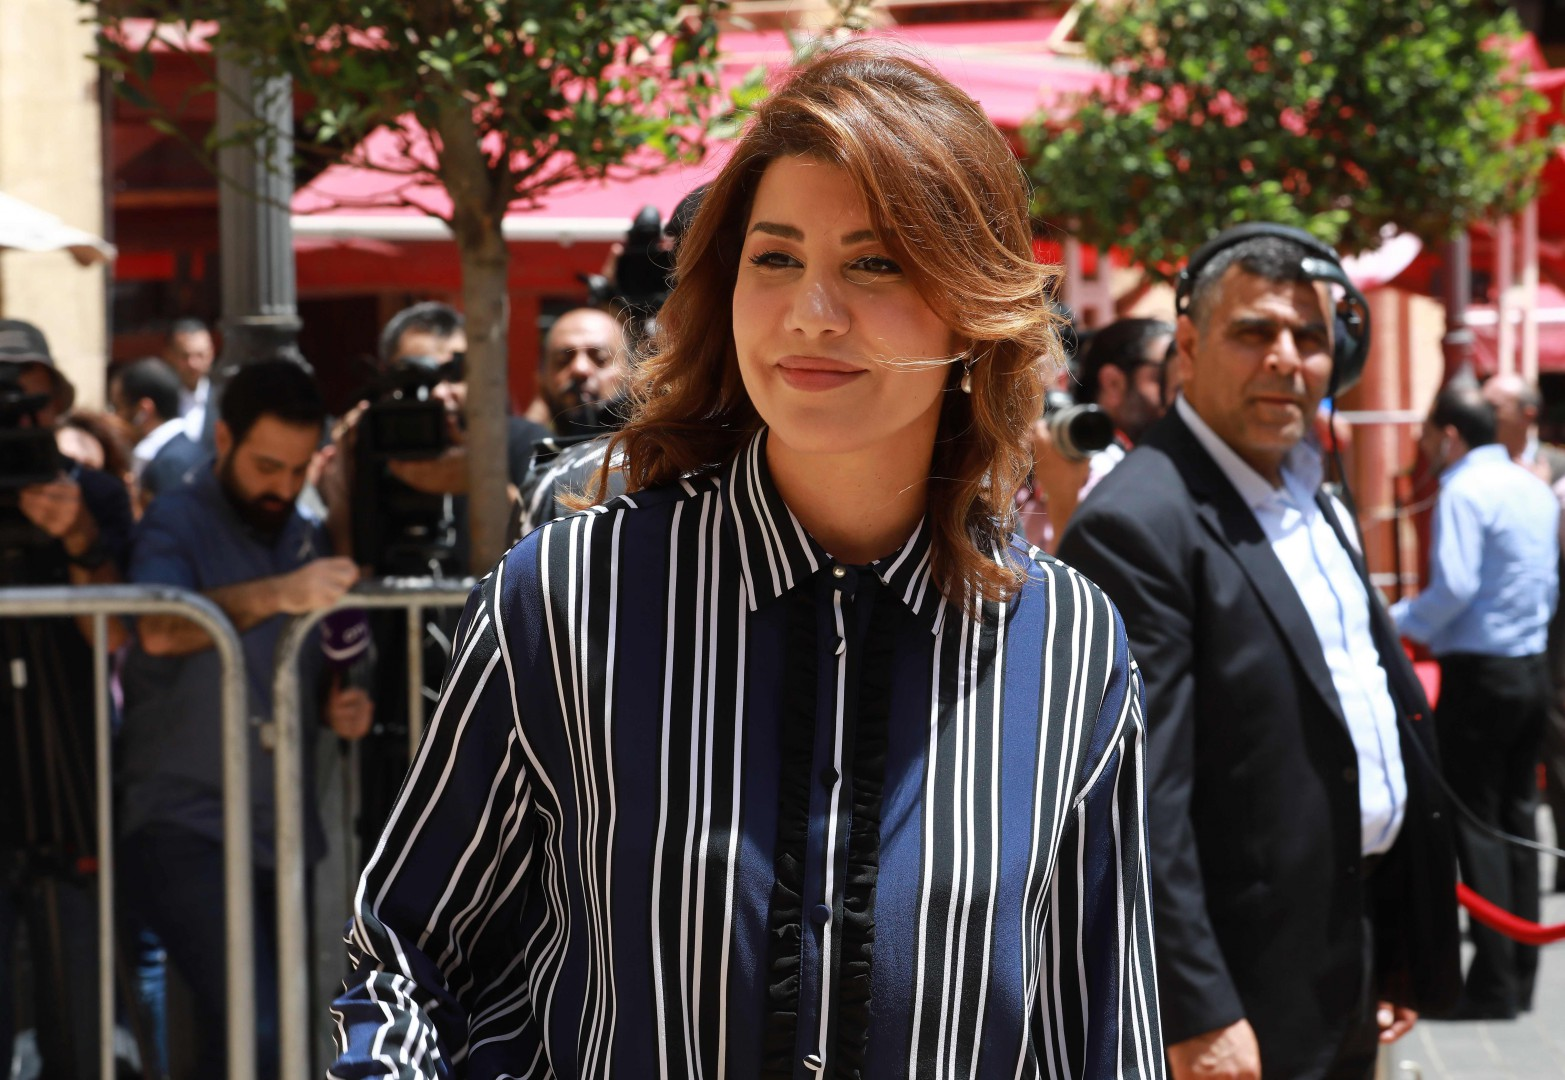 Newly elected Lebanese MP Paula Yacoubian, arrives at Lebanon's parilament in the capital Beirut ahead of a session to elect a new speaker, on May 23, 2018. Lebanon's parliament on Wednesday selected Nabih Berri for a sixth consecutive term as its speaker in their inaugural session, making him one of the longest-serving speakers in the world.  / AFP PHOTO / ANWAR AMRO